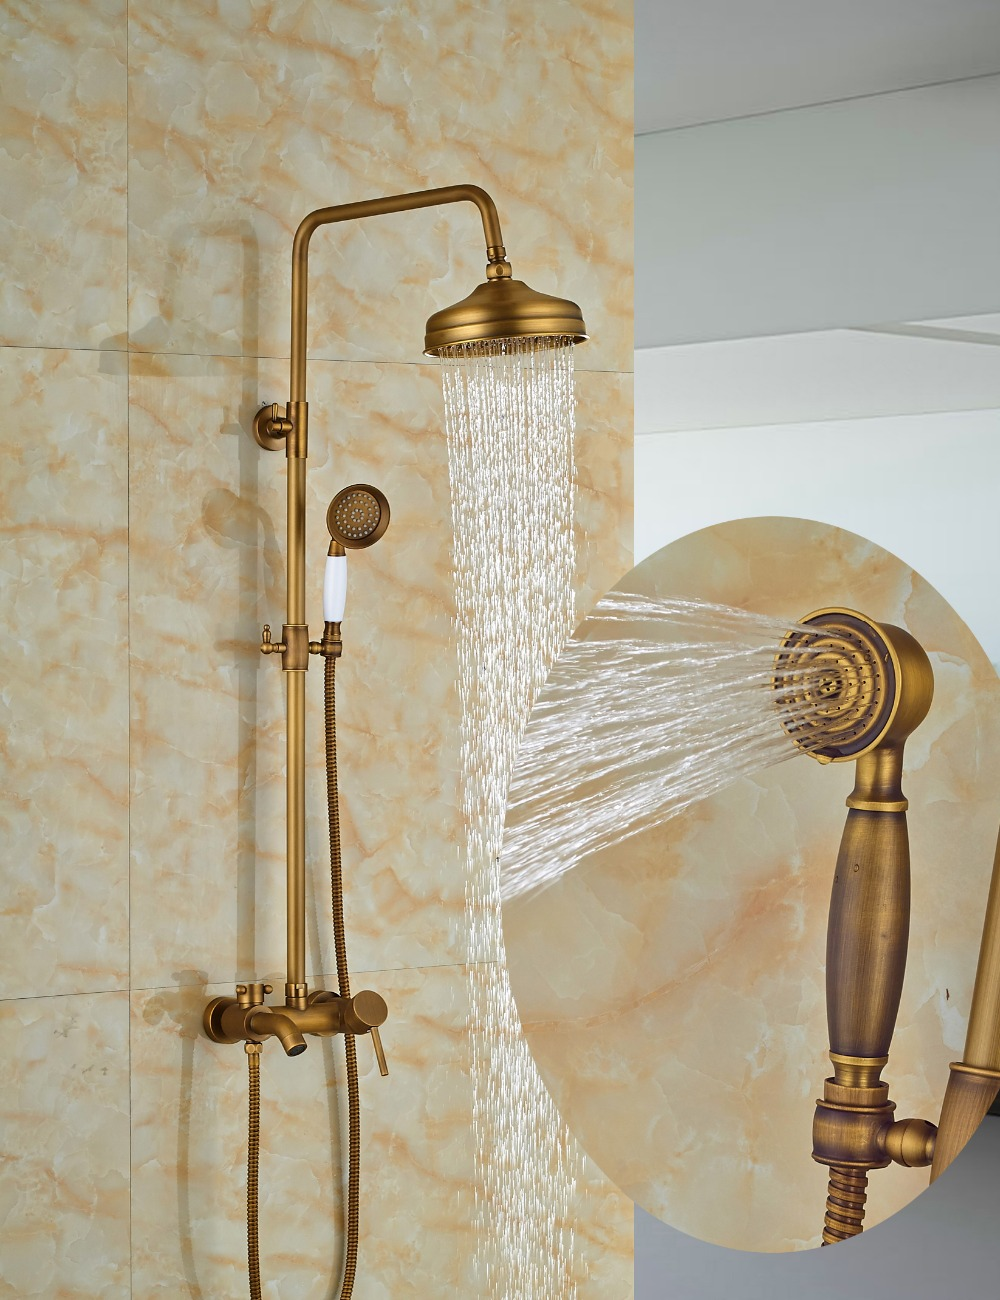 Wholesale And Retail Classic Antique Brass Round Rain Shower Head Wall Mounted Shower Column Mixer Tap W/ Tub Spout wholesale and retail promotion wall mounted bathroom tub faucet spout w hand shower sprayer antique brass shower mixer tap